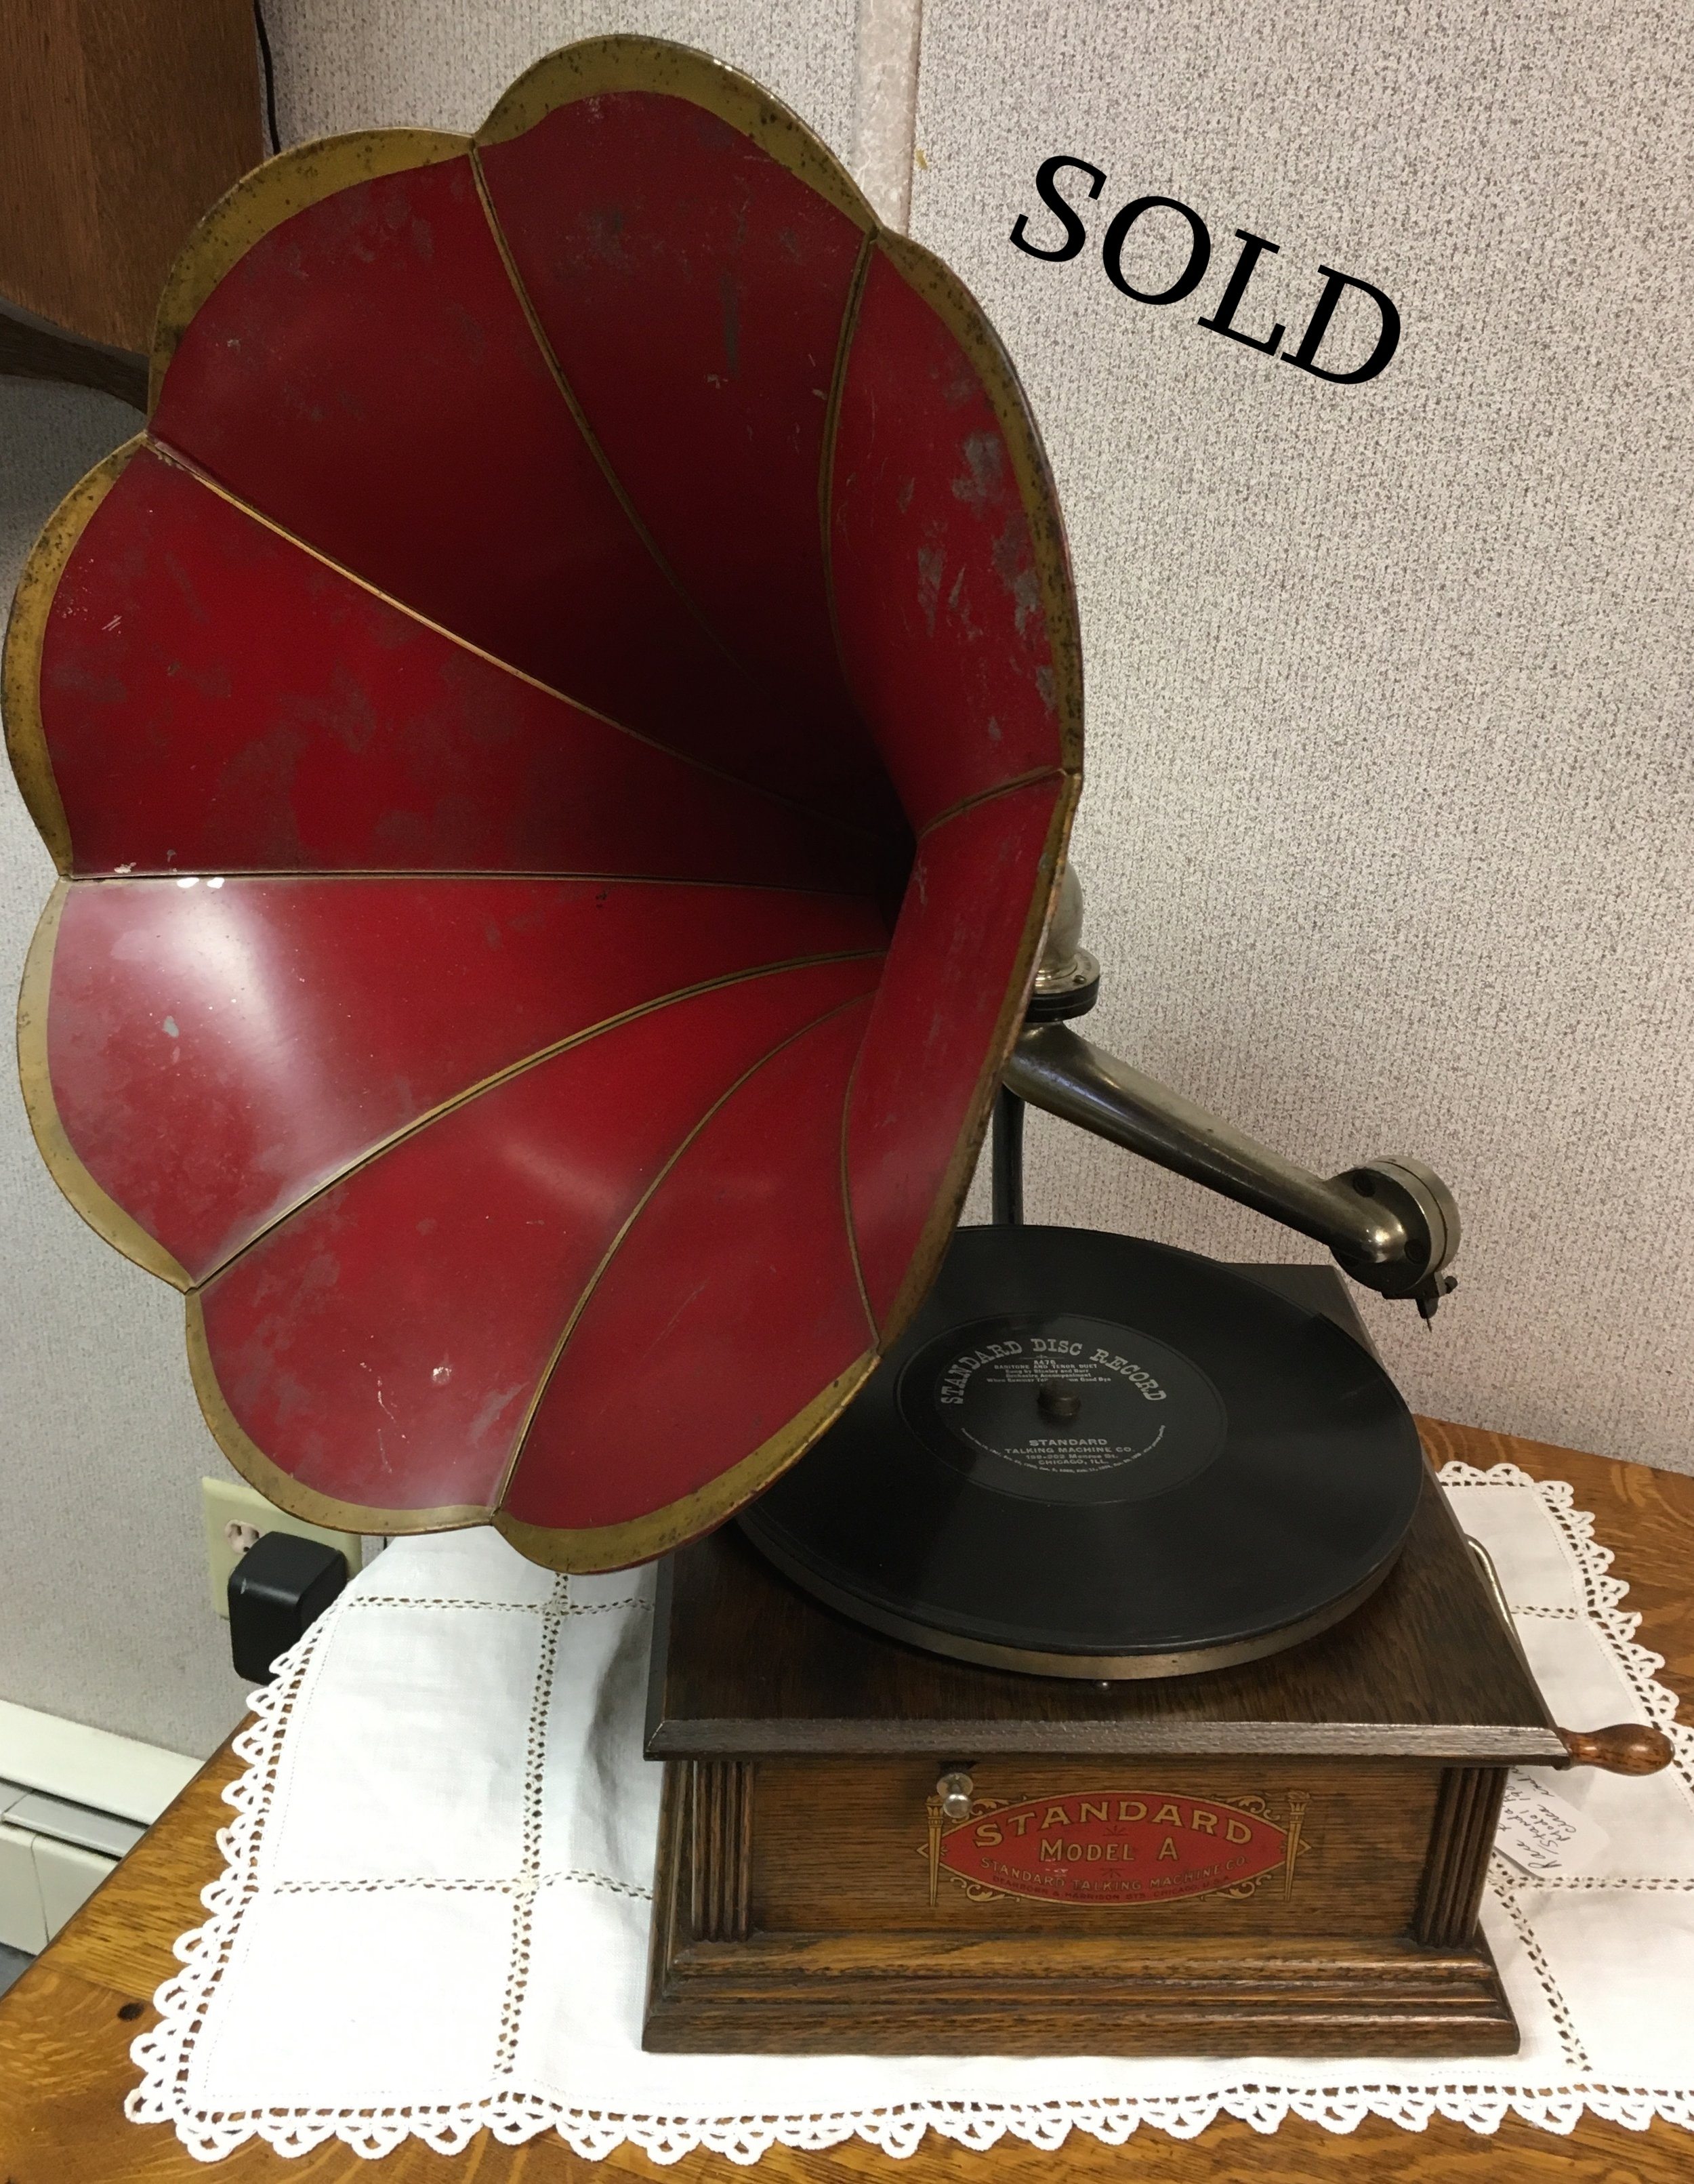 This is an old time crank phonograph that is called the Standard Model A. They were made in the early 1900's.